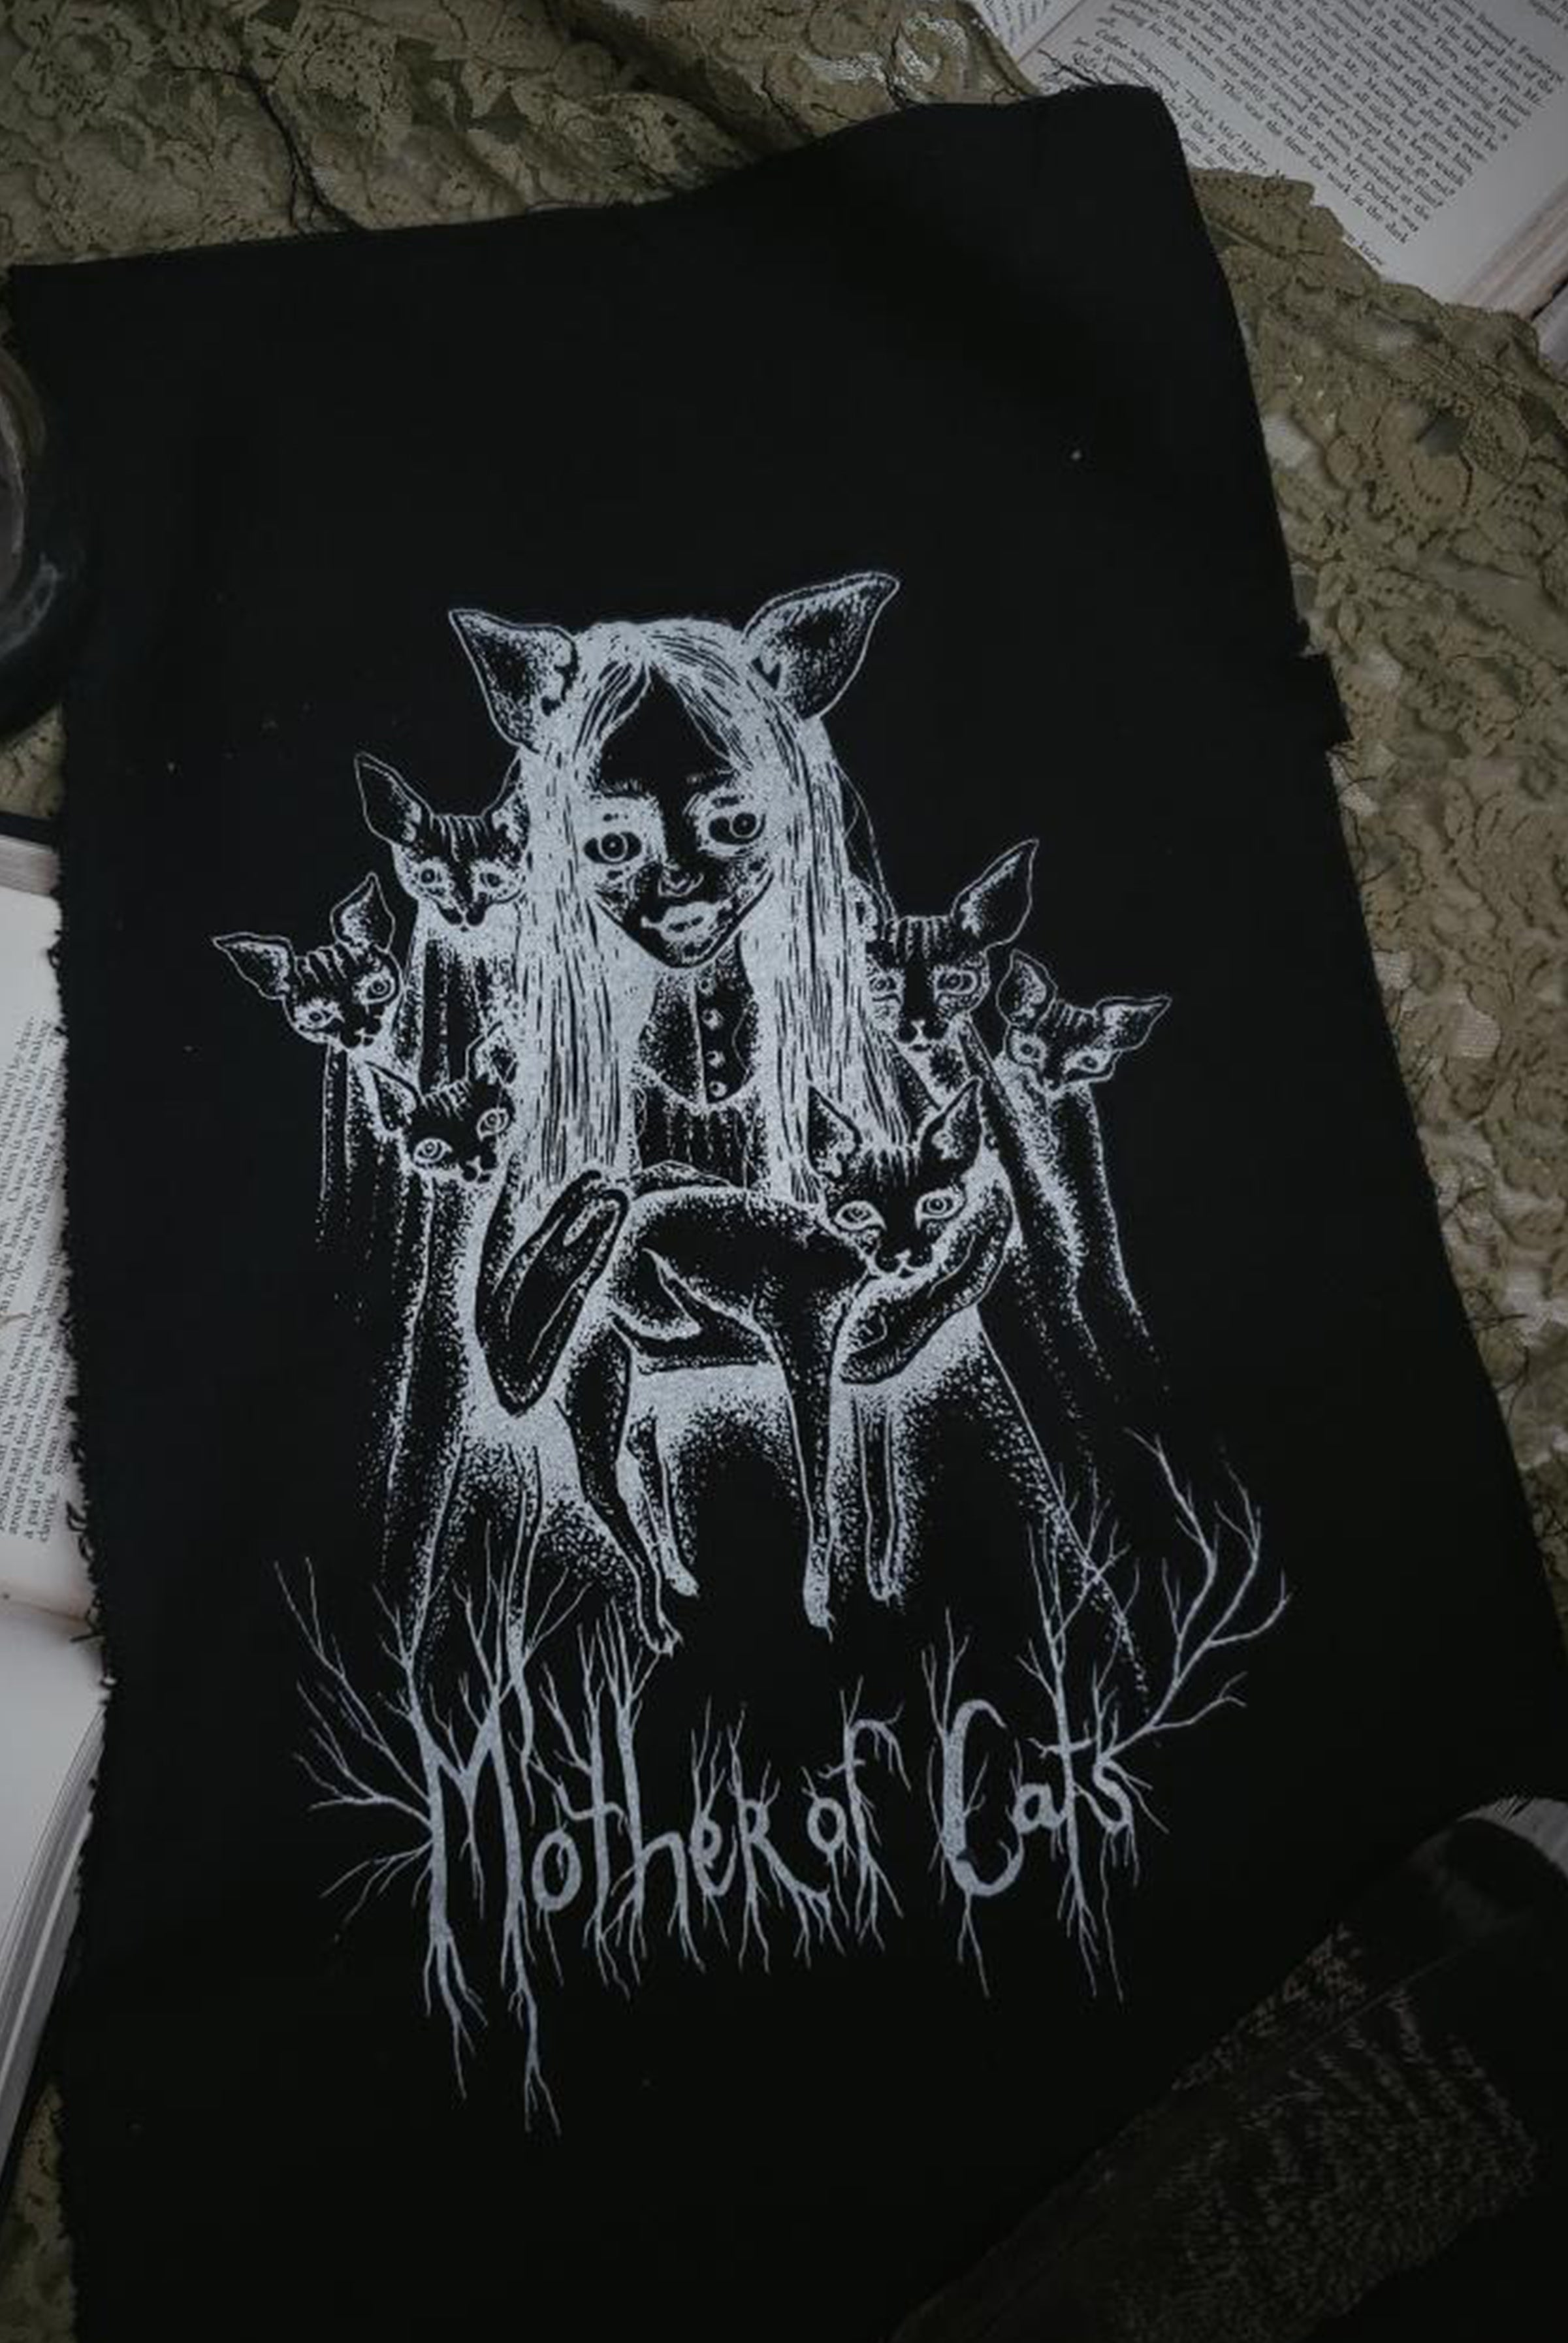 Mother Of Cats Back Patch - 1 LEFT!